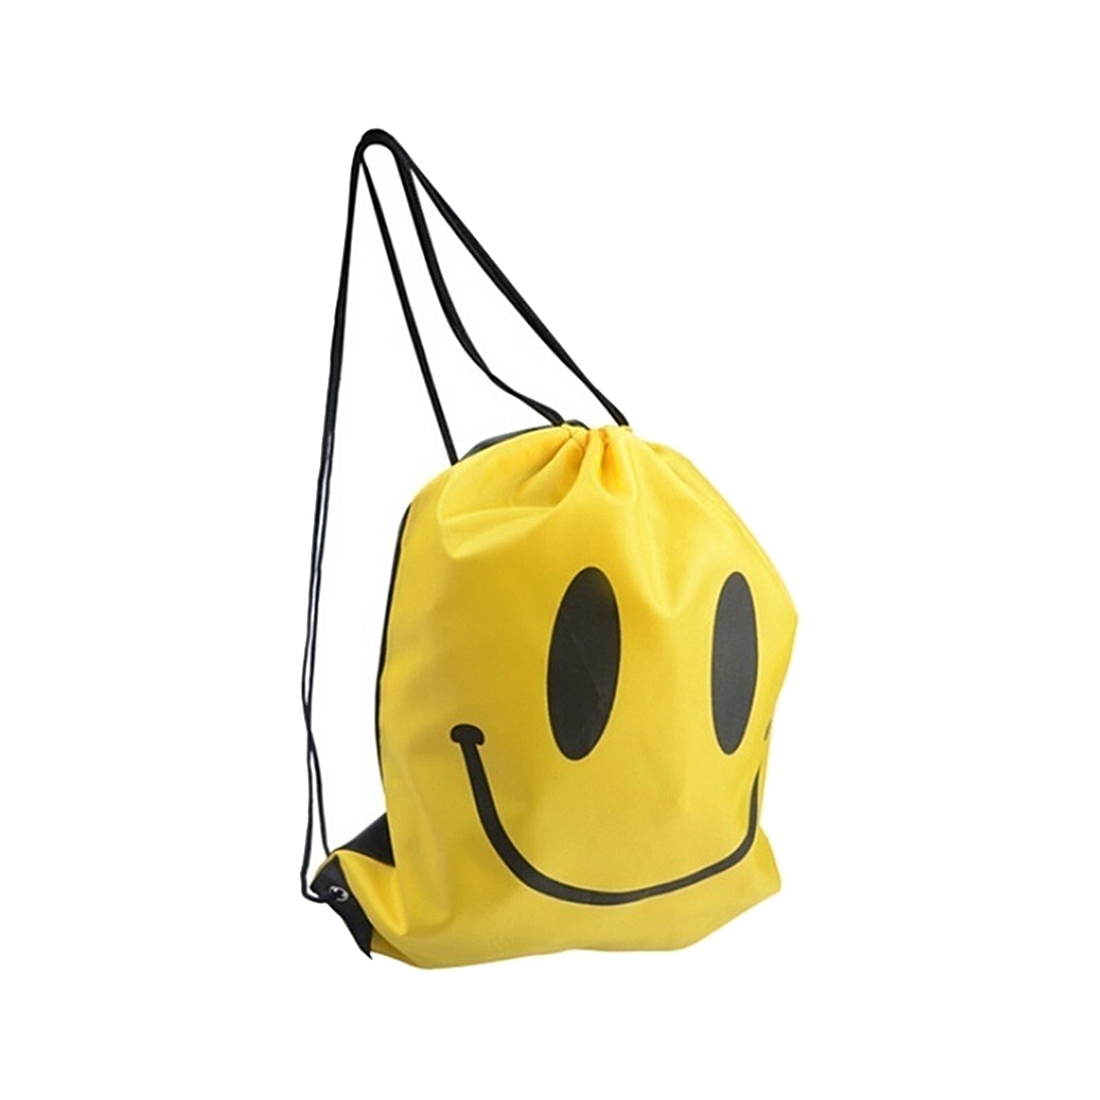 TFTP Smile  backpack Drawstring Waterproof bagTFTP Smile  backpack Drawstring Waterproof bag